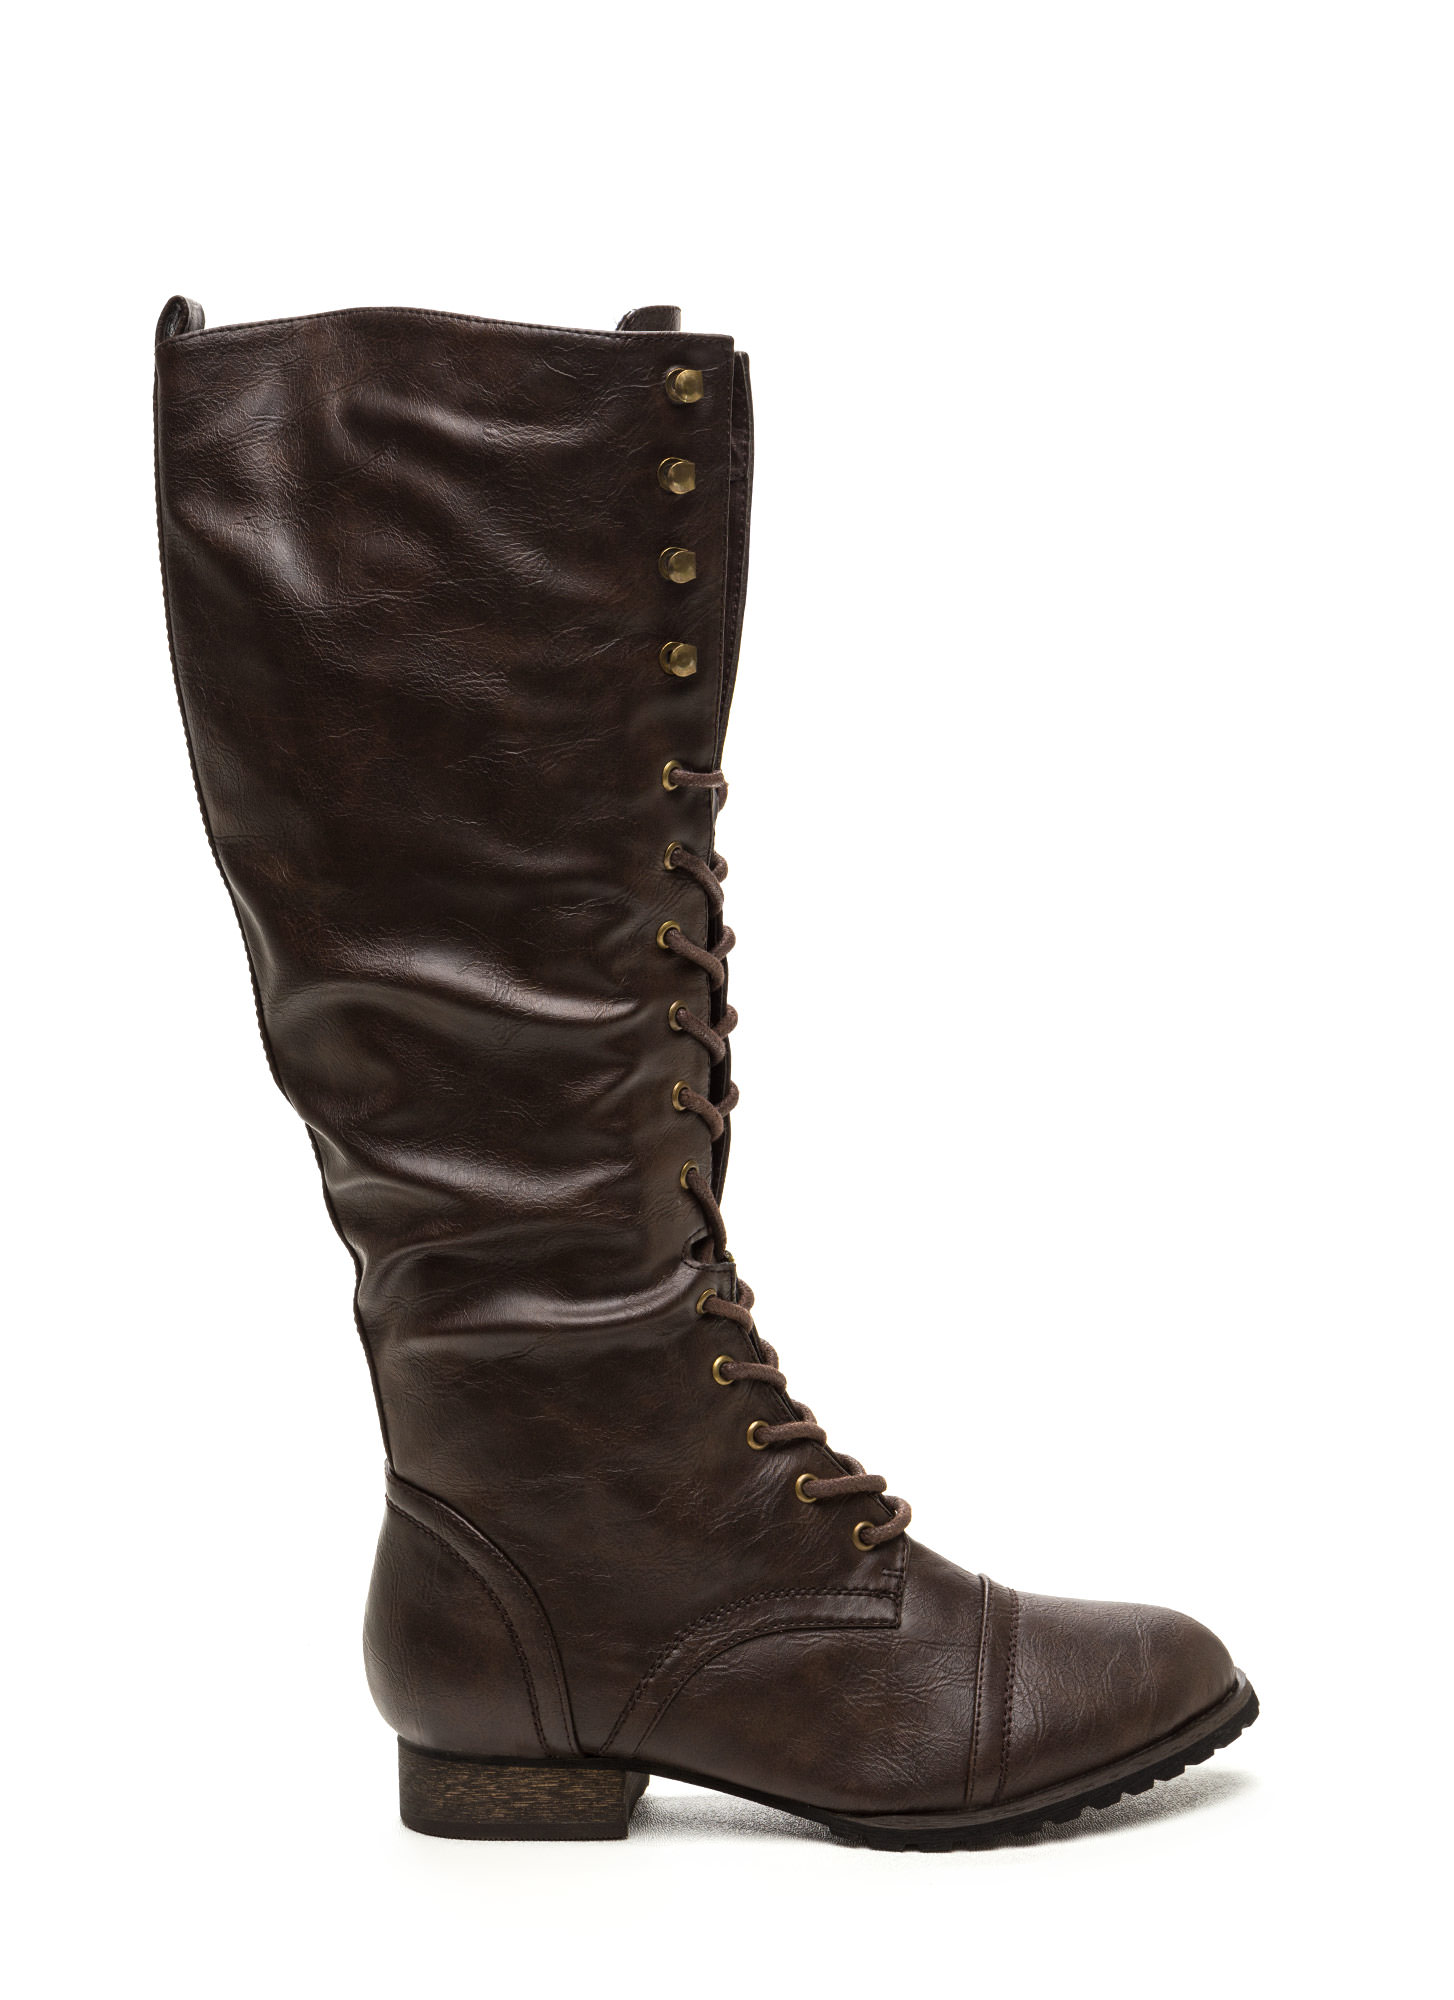 E Brown Quality Inexpensive Boots